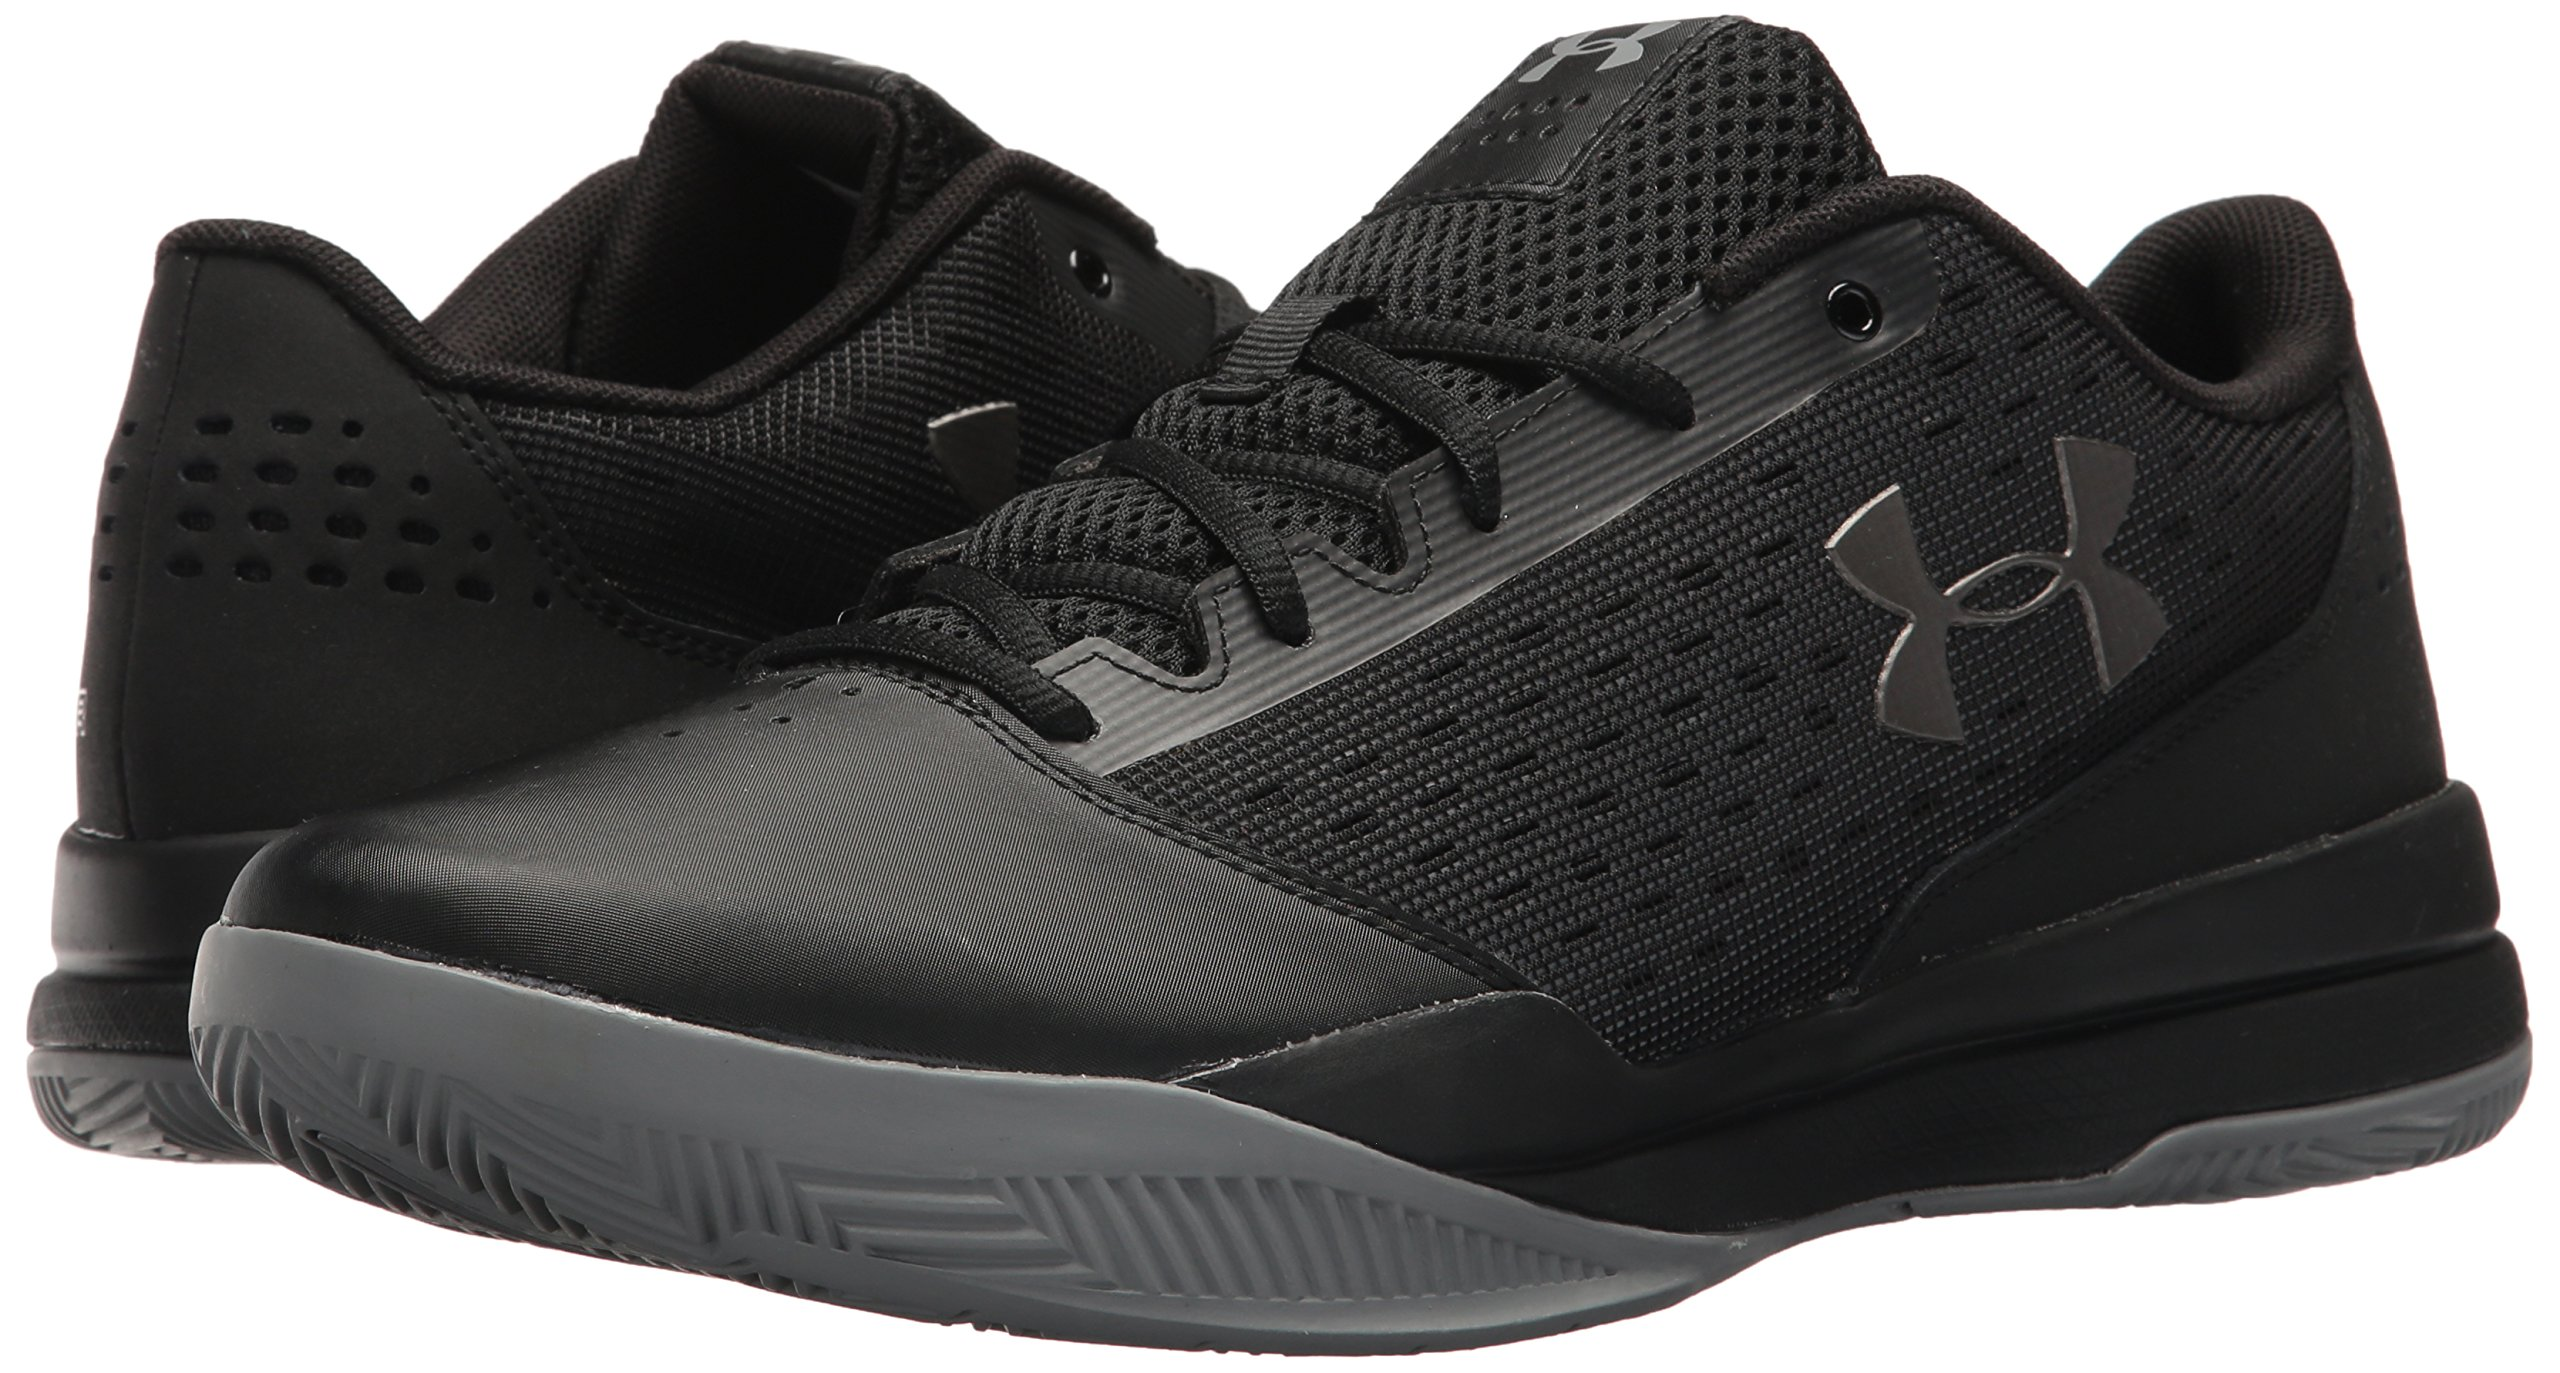 Enfriarse demasiado Asia  Under Armour Men's Jet Low Basketball Shoes- Buy Online in Cayman Islands  at cayman.desertcart.com. ProductId : 61929448.